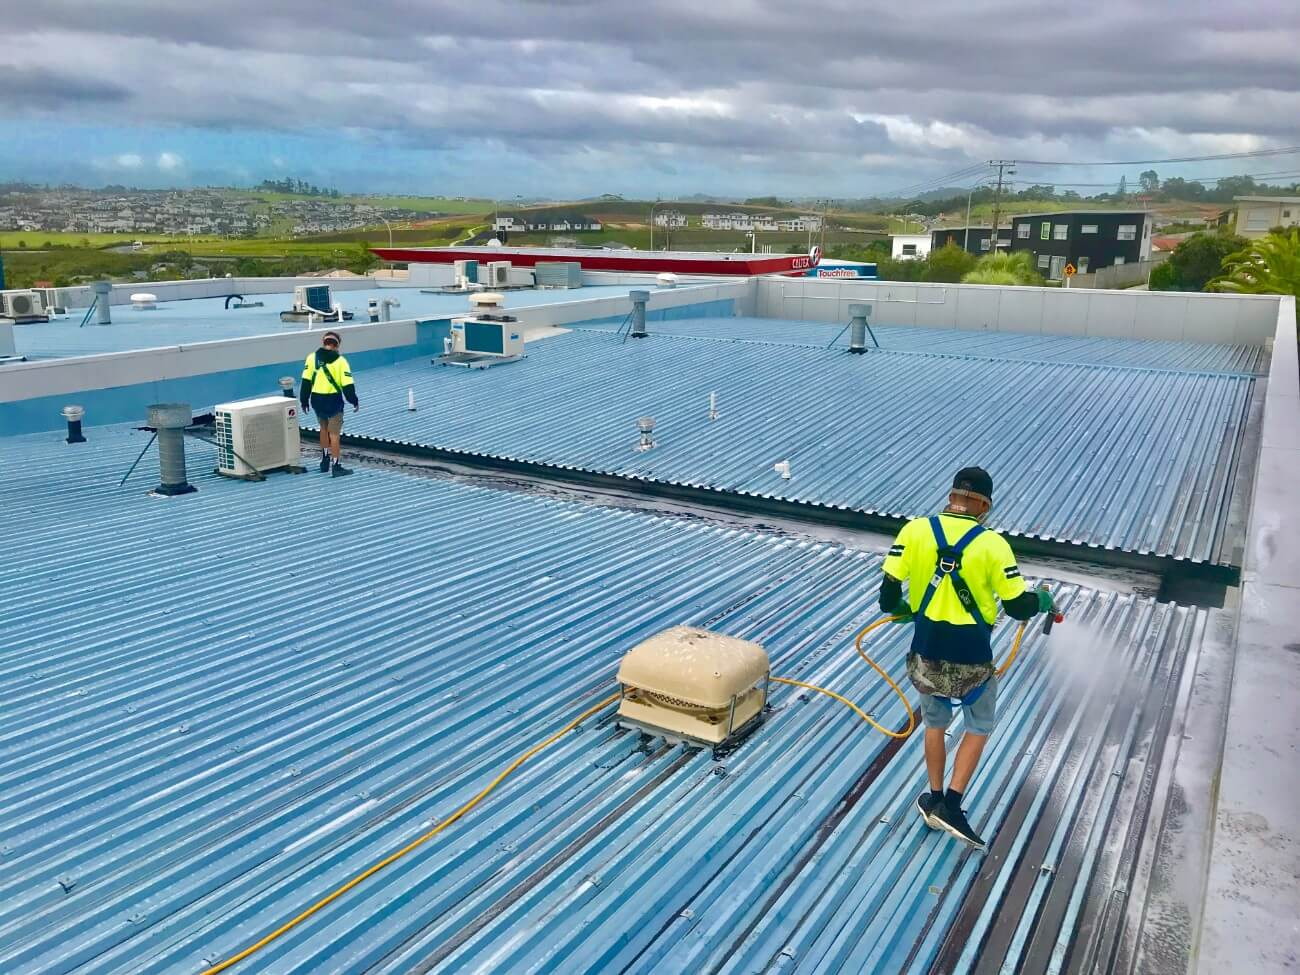 NZTS roof cleaning service in progress